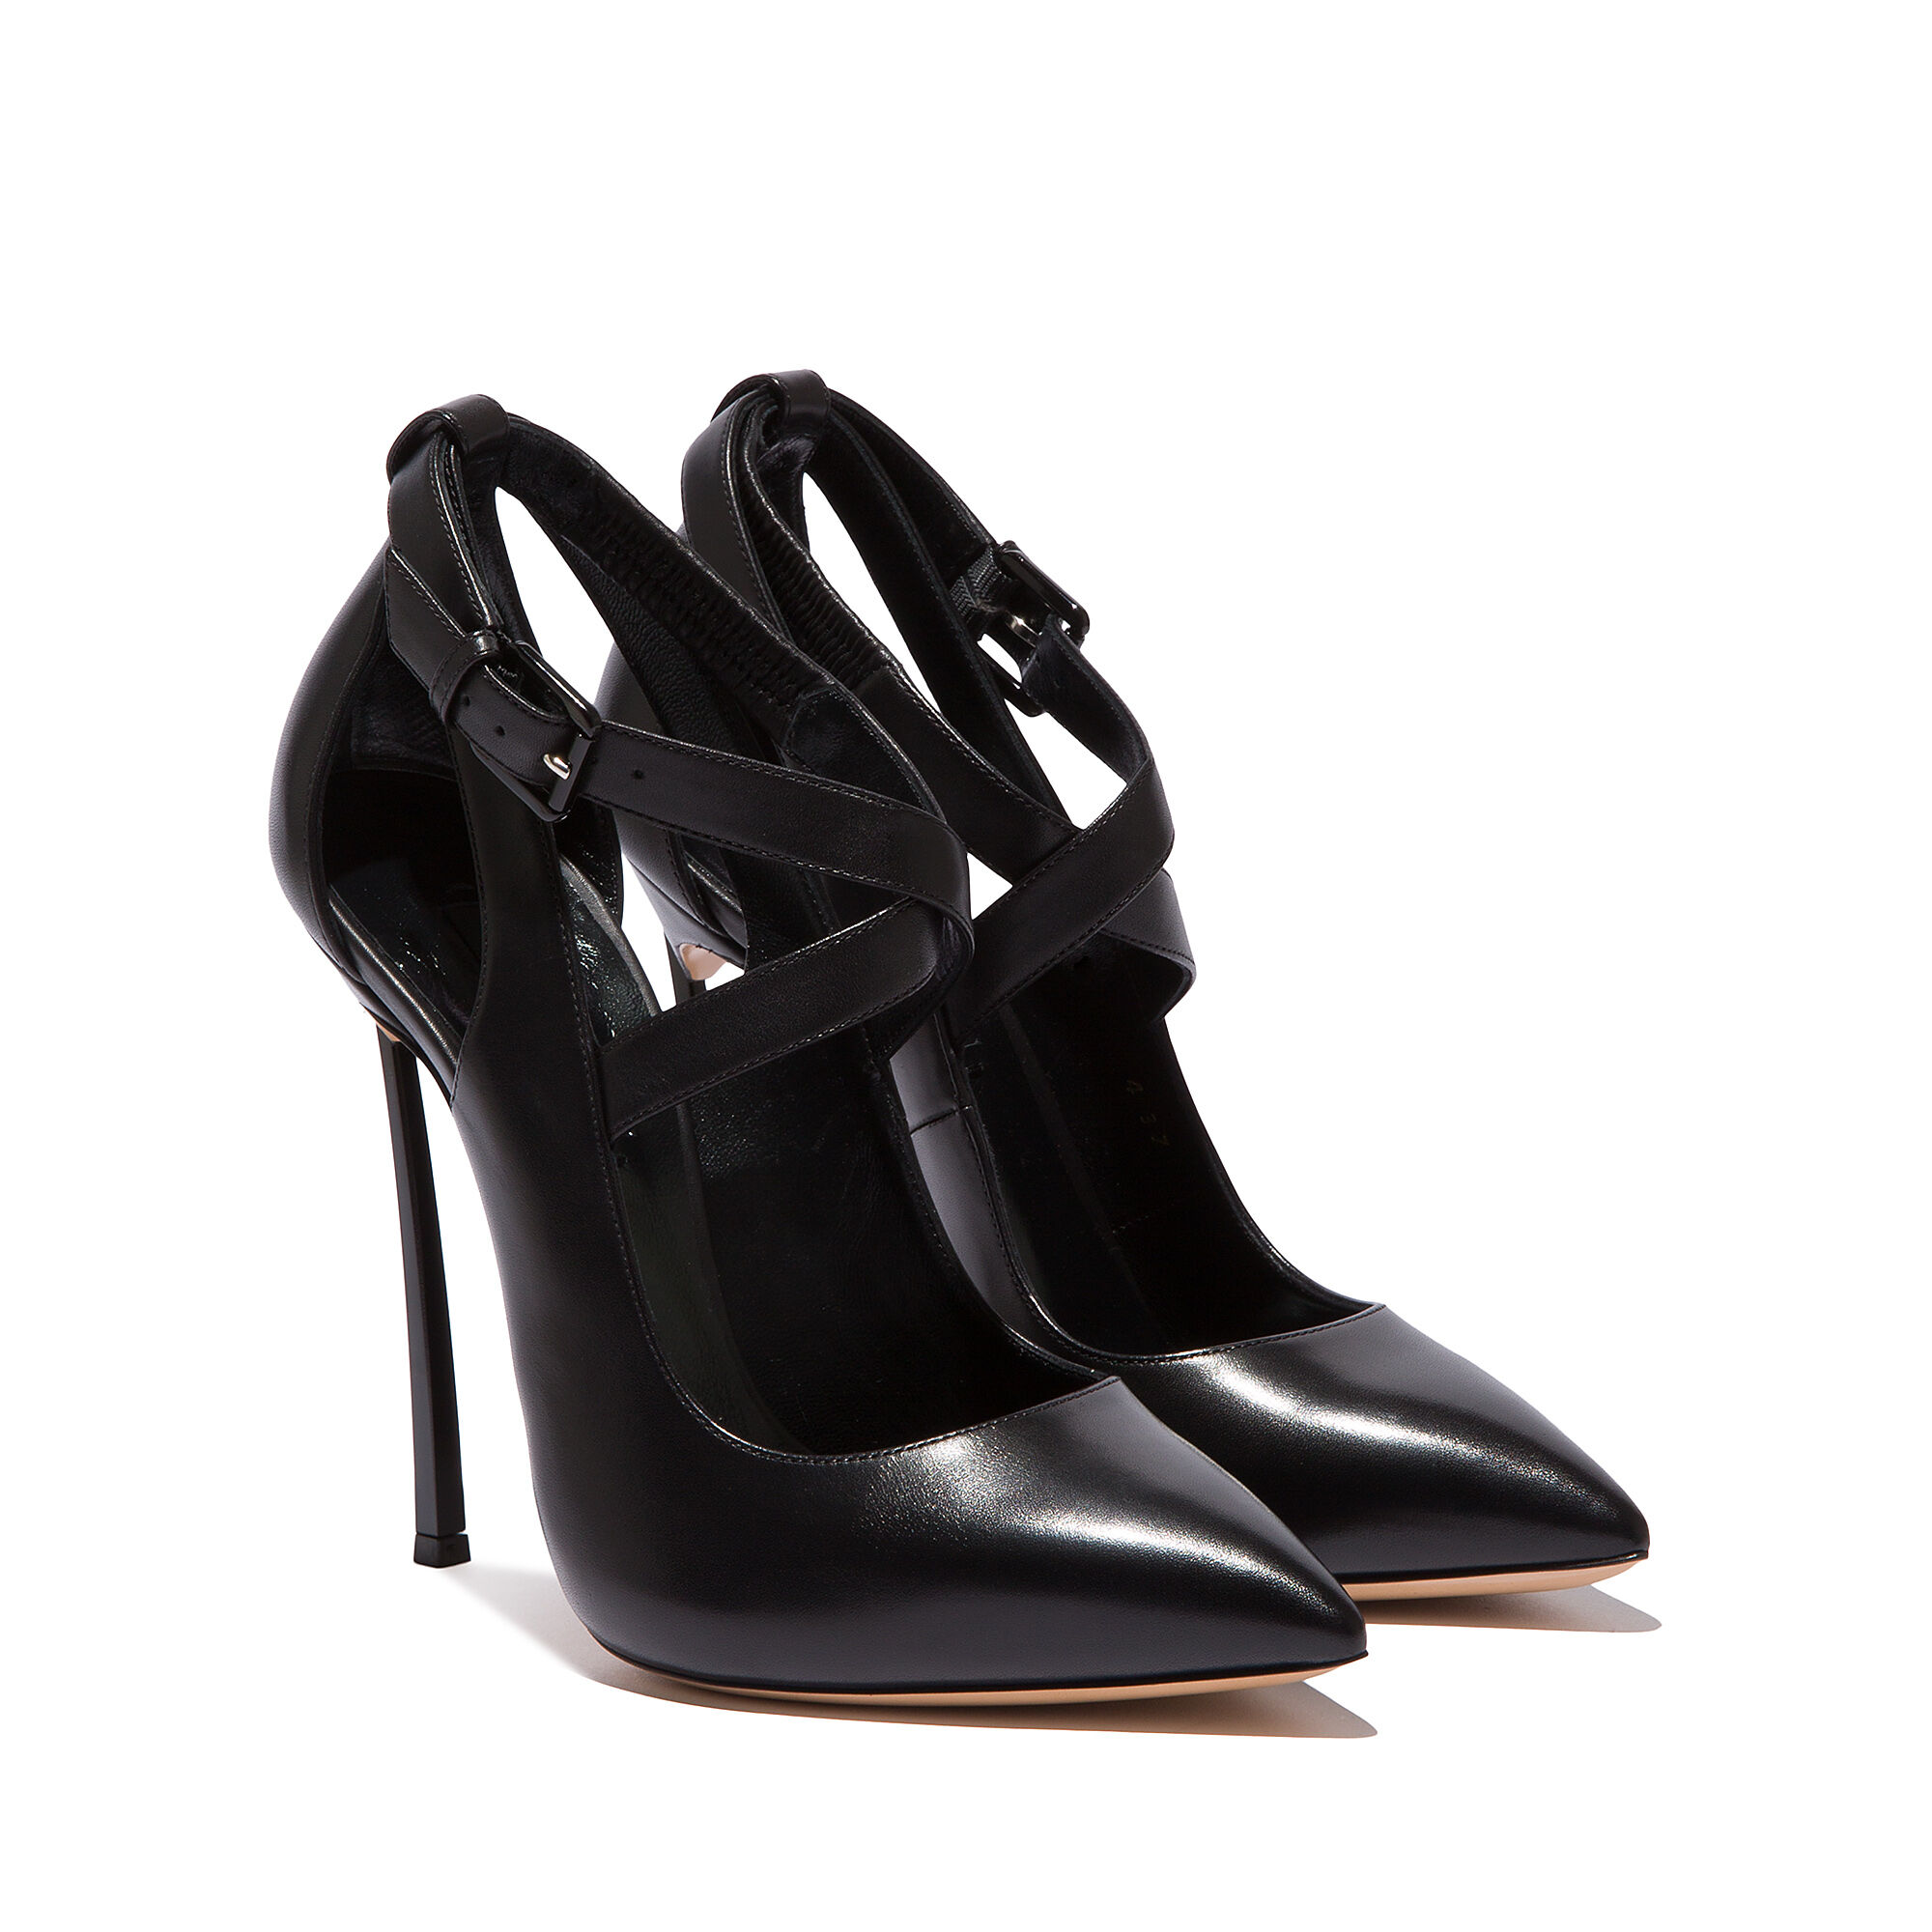 Casadei buckle detail pumps wiki cheap price buy cheap recommend buy cheap official discount new arrival pP08DtouH